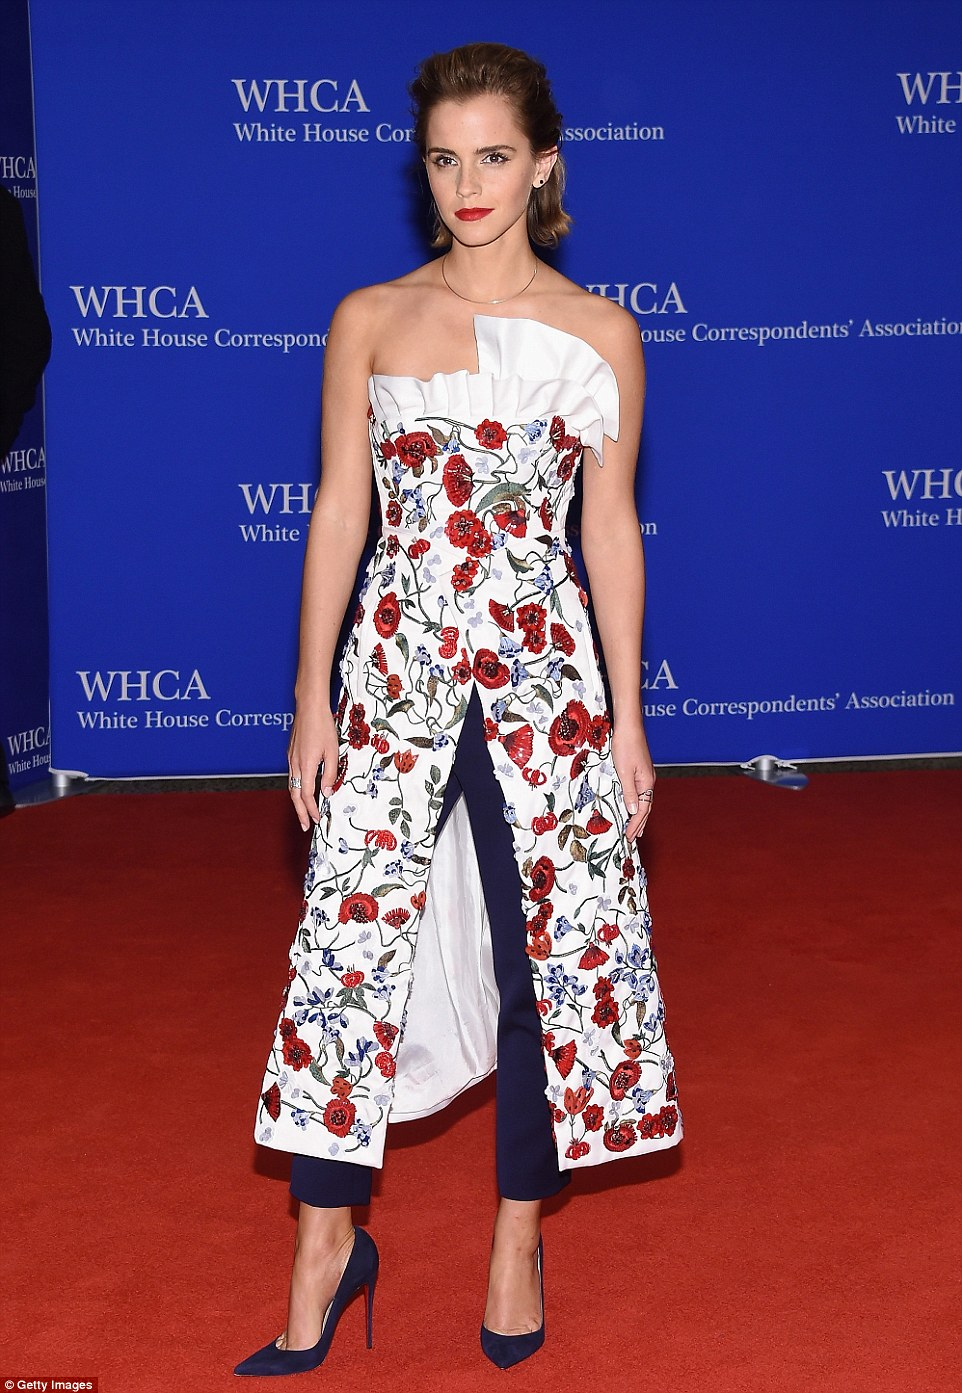 Emma Watson wears a strapless floral look for the White House Correspondents' Dinner